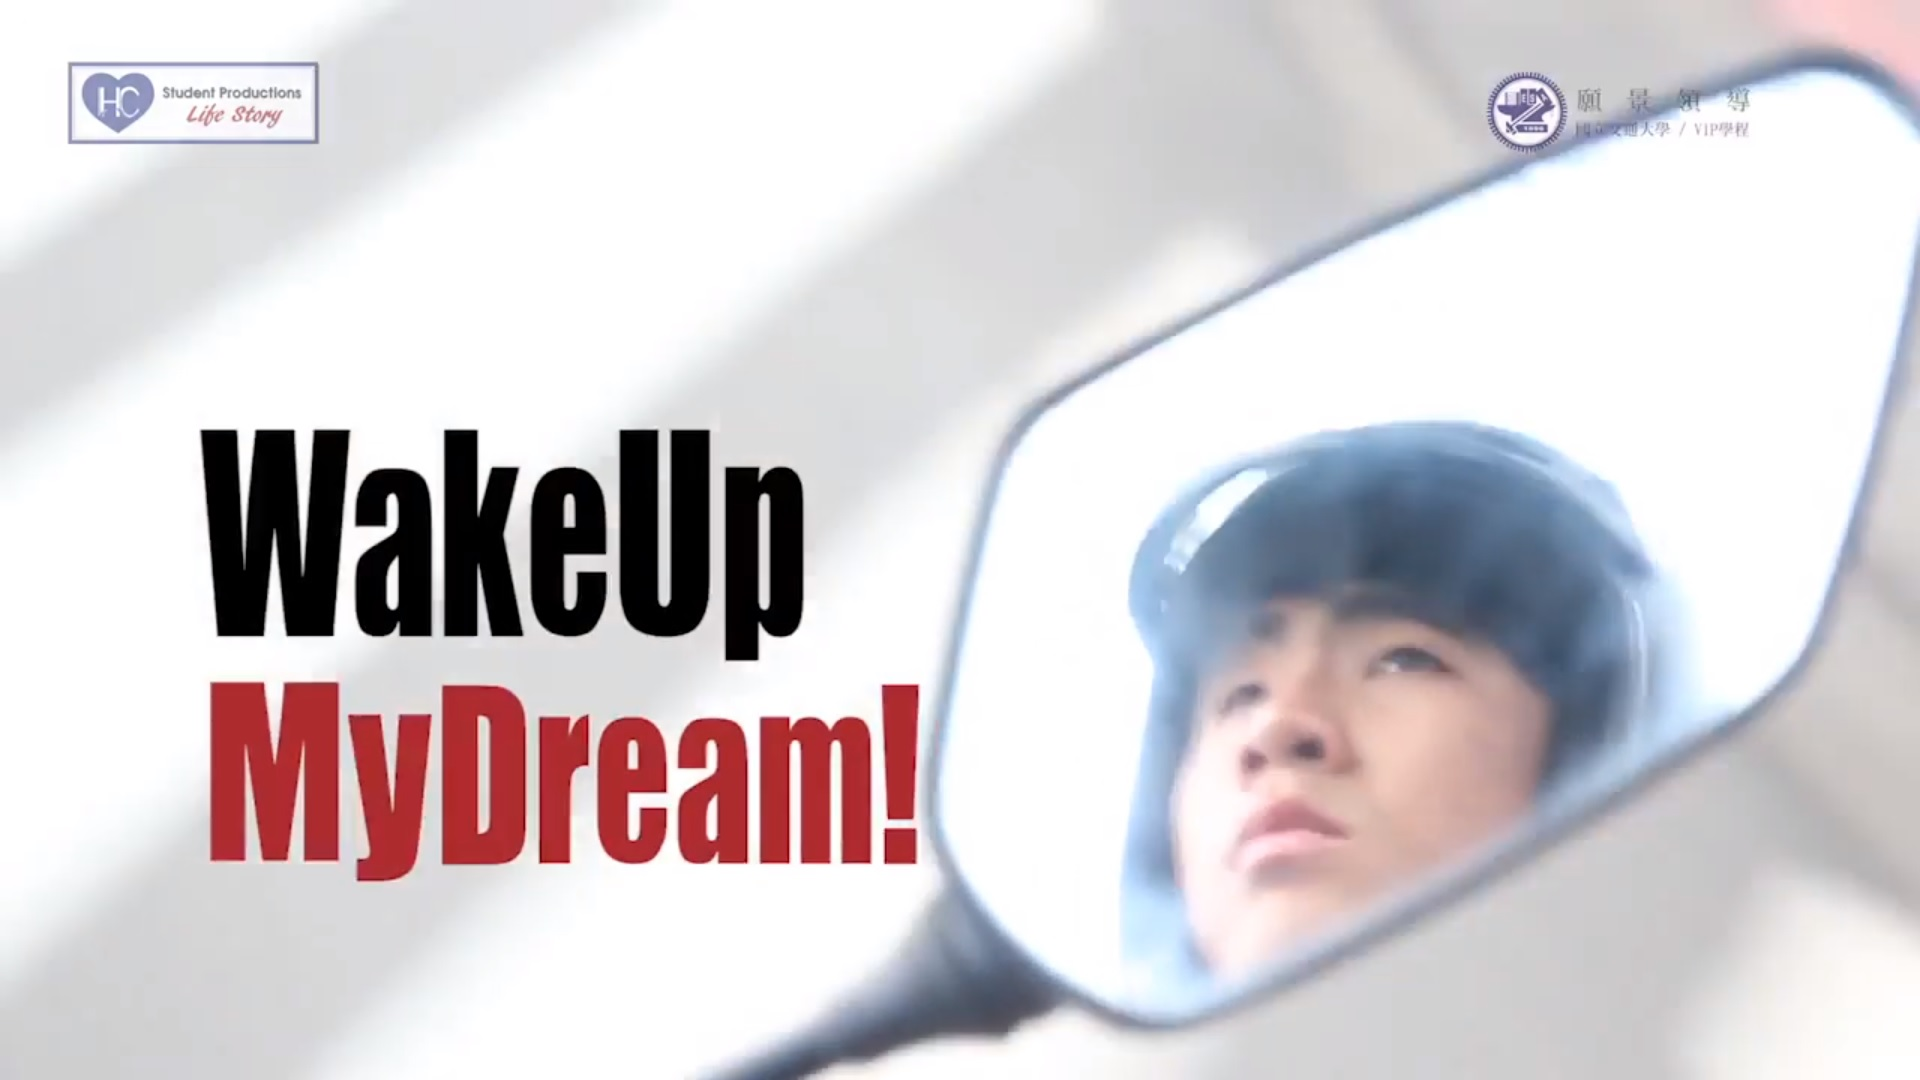 HC-Student Productions-Life Story-Wake up my dream